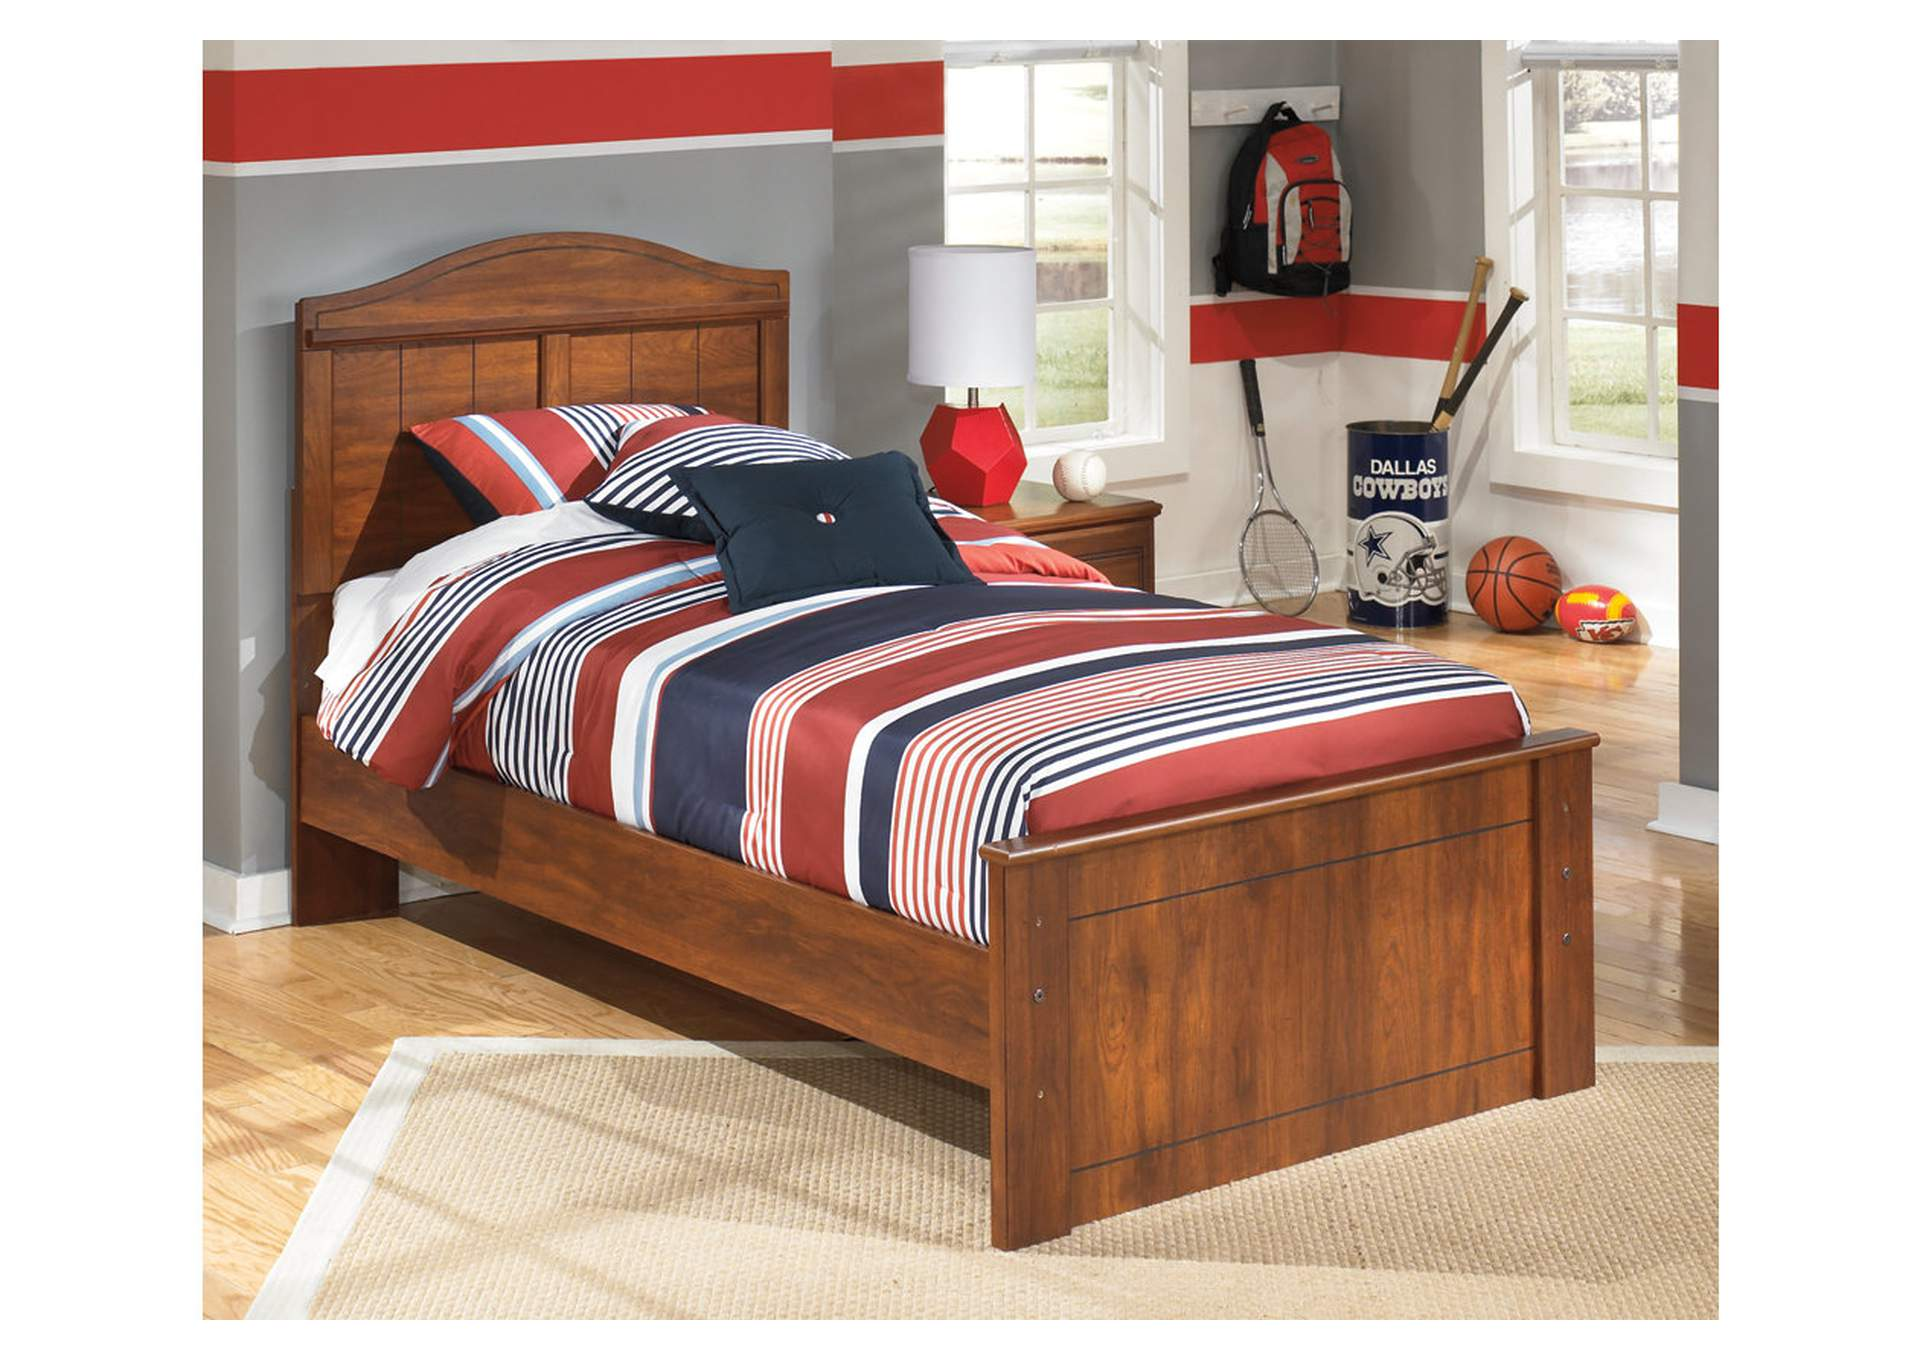 Barchan Twin Panel Bed,Direct To Consumer Express